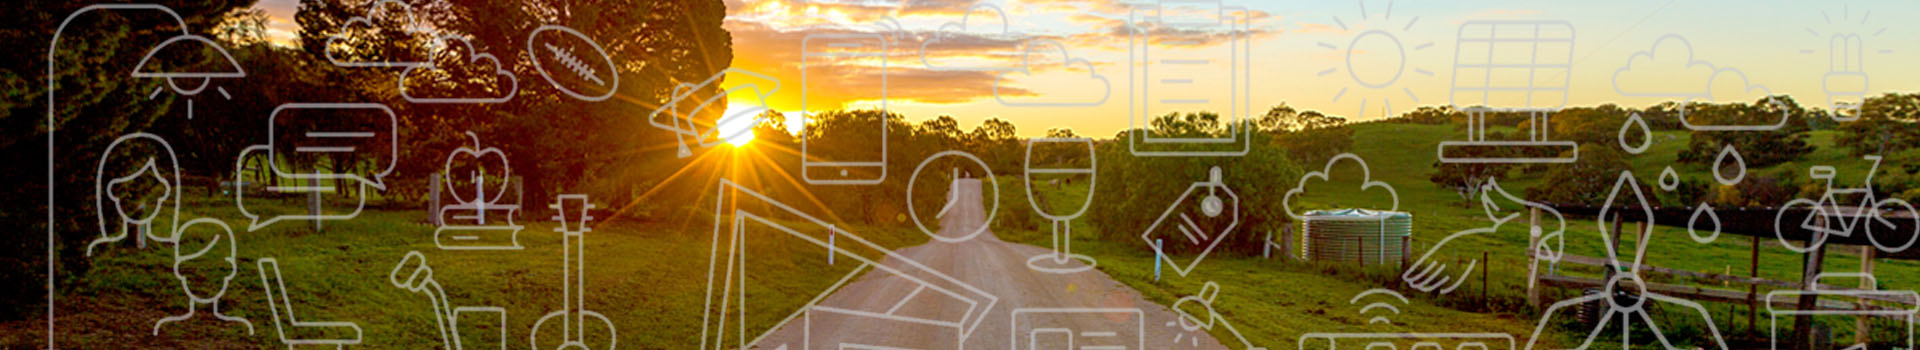 Sunset rural image with graphics for Community Plan 2020-2035